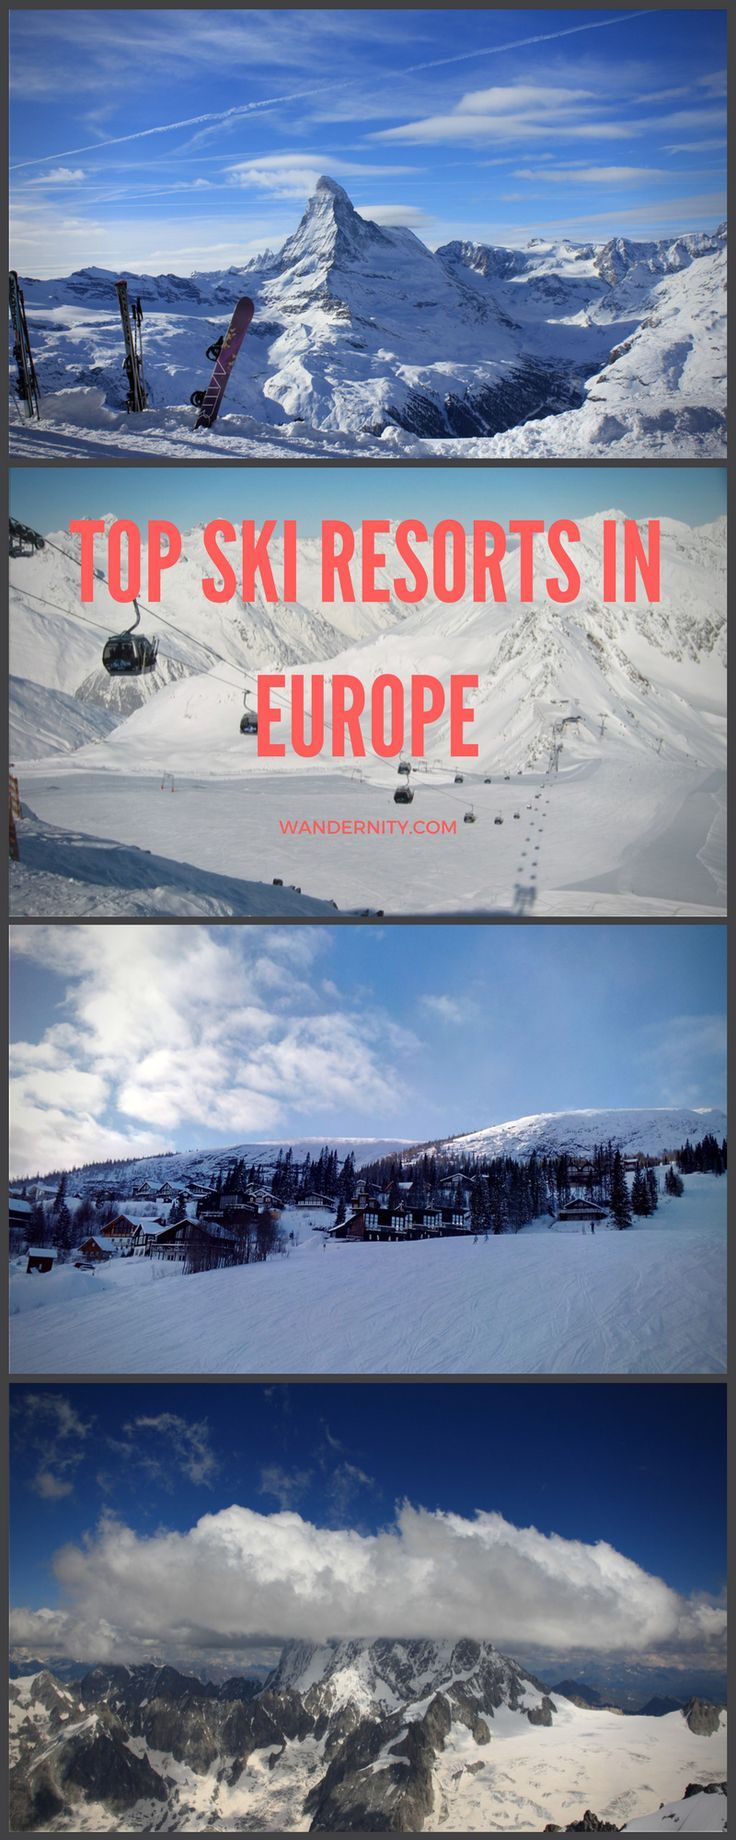 Winter in Europe is marvelous with the white snow, gorgeous mountains and exciting winter sports options. The biggest and best ski resorts offer a variety of slopes both for beginners and experienced skiers. Europeans are keen on keeping active during the winters and going on skiing holidays together with their families. Below is a guide to 5 top ski and snowboard resorts across Europe.